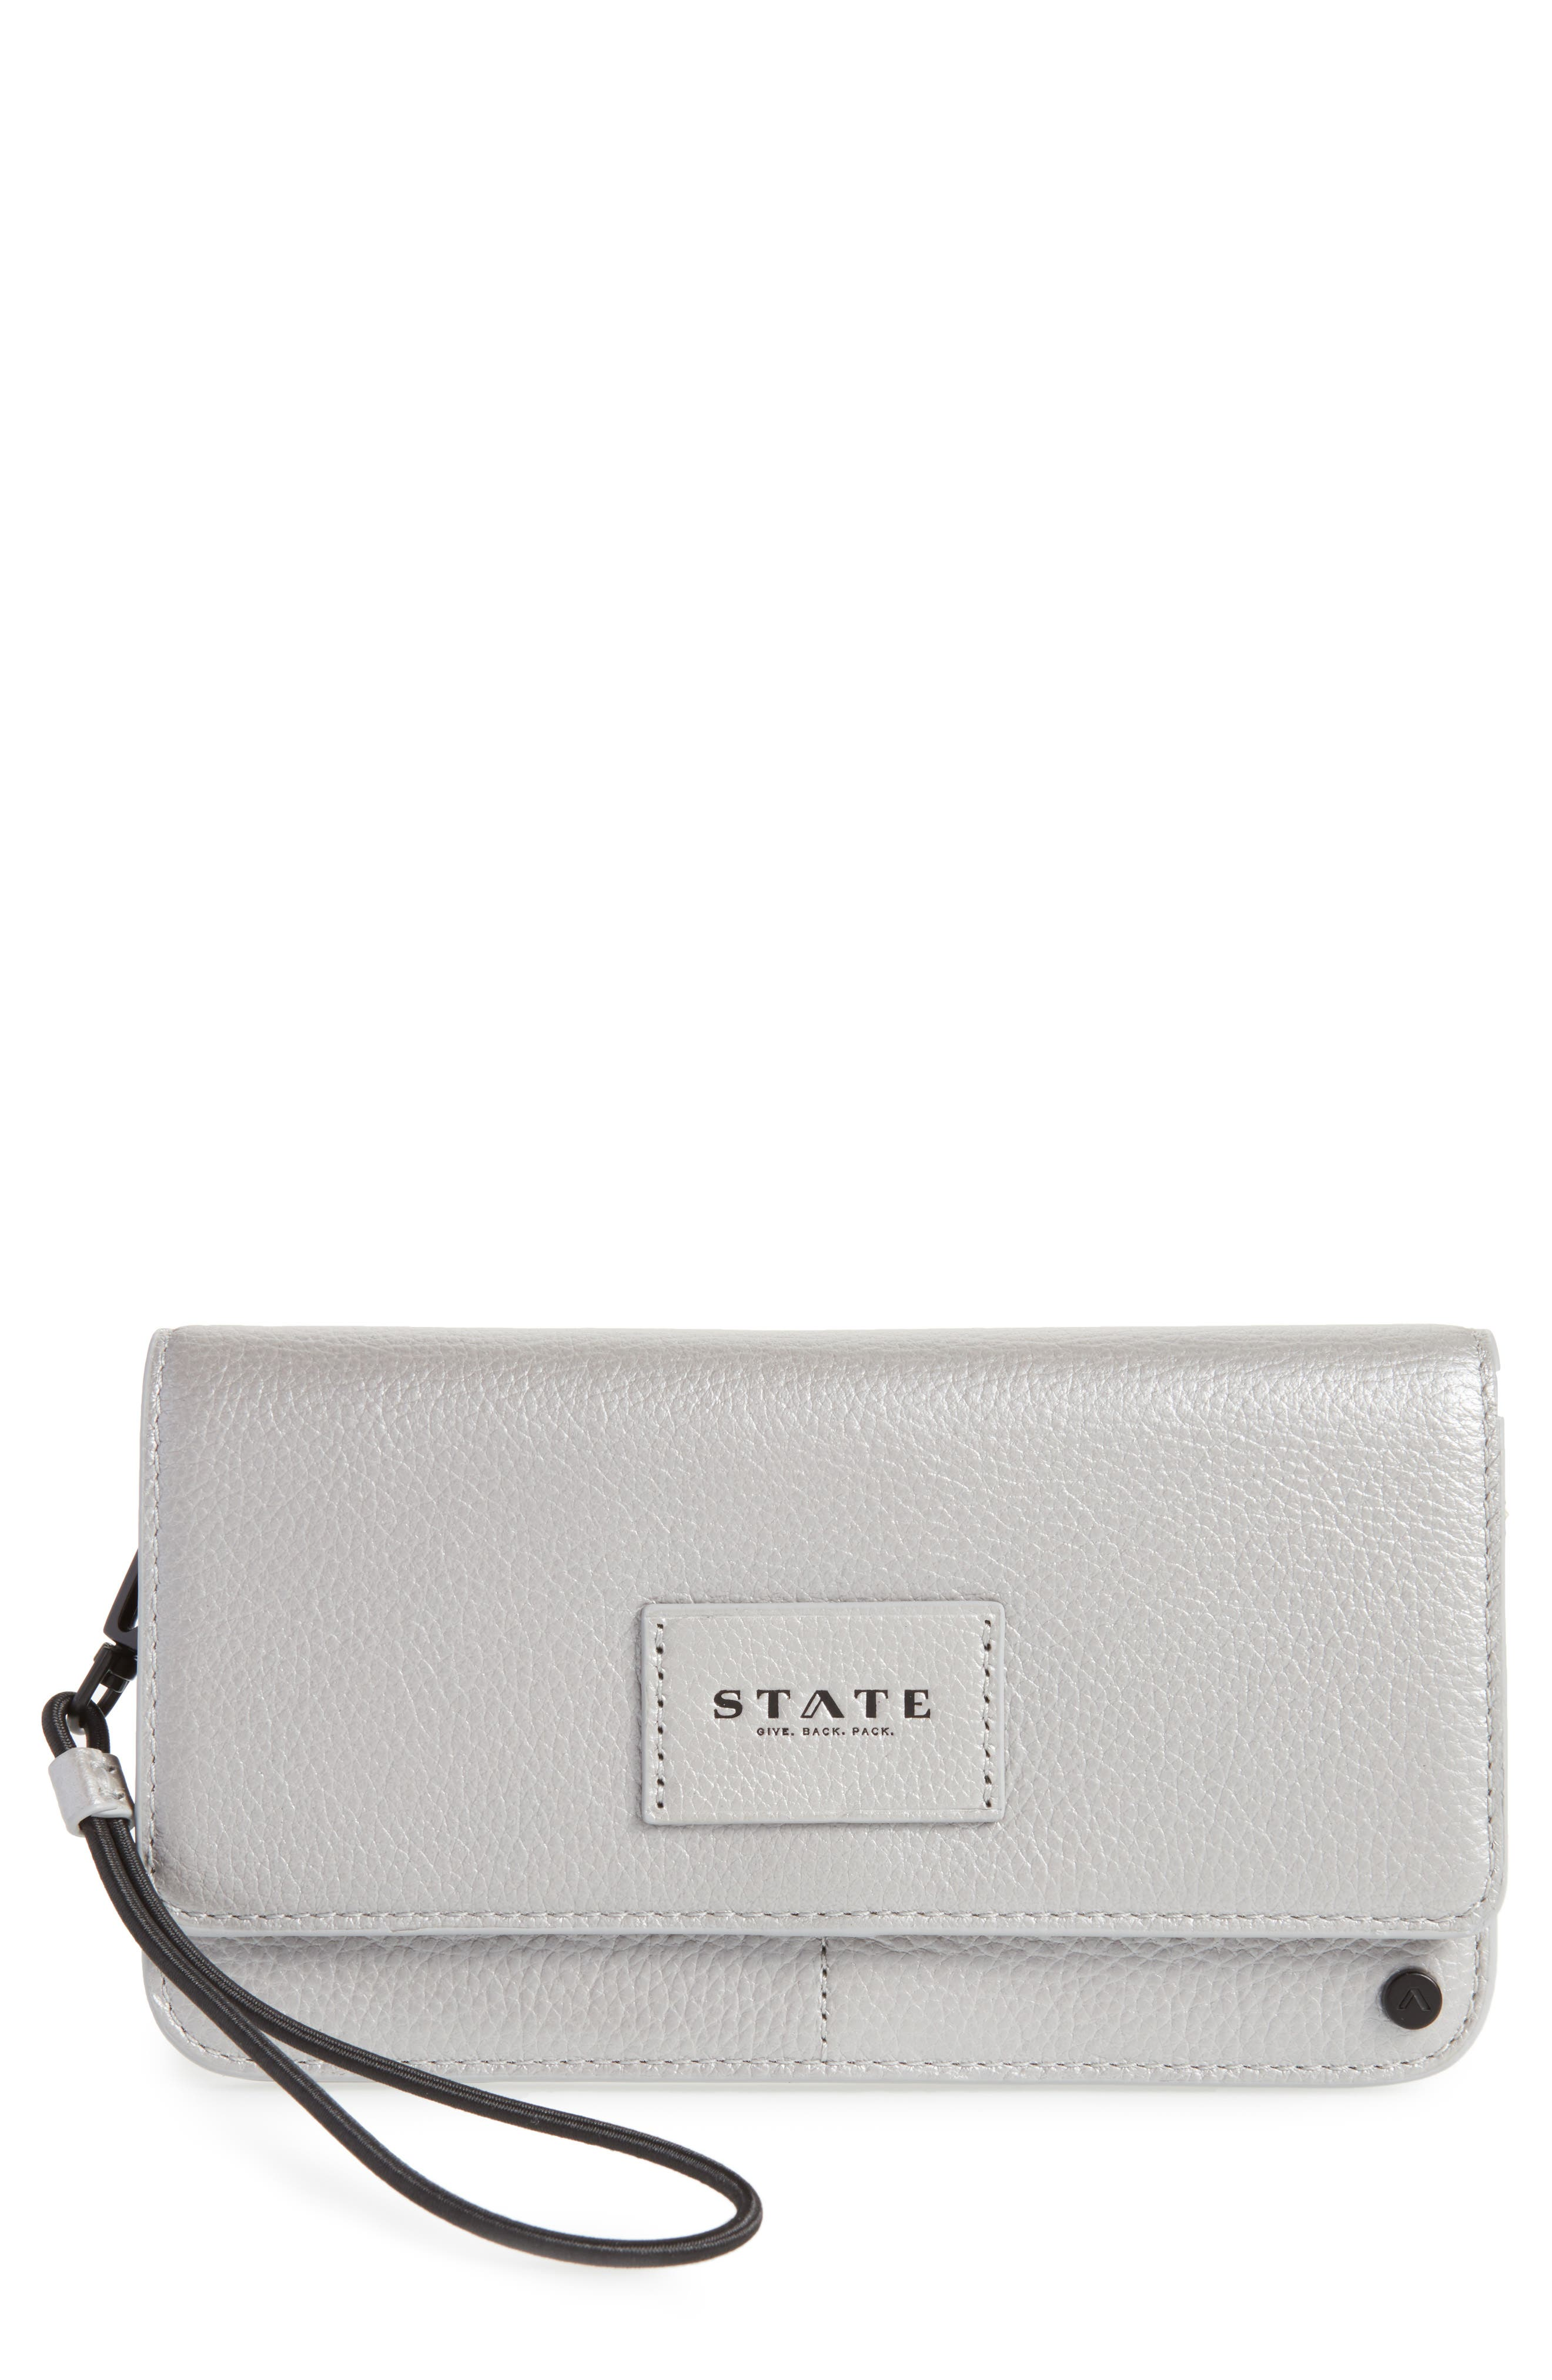 Greenwood Bristol Leather Wristlet,                             Main thumbnail 1, color,                             Silver